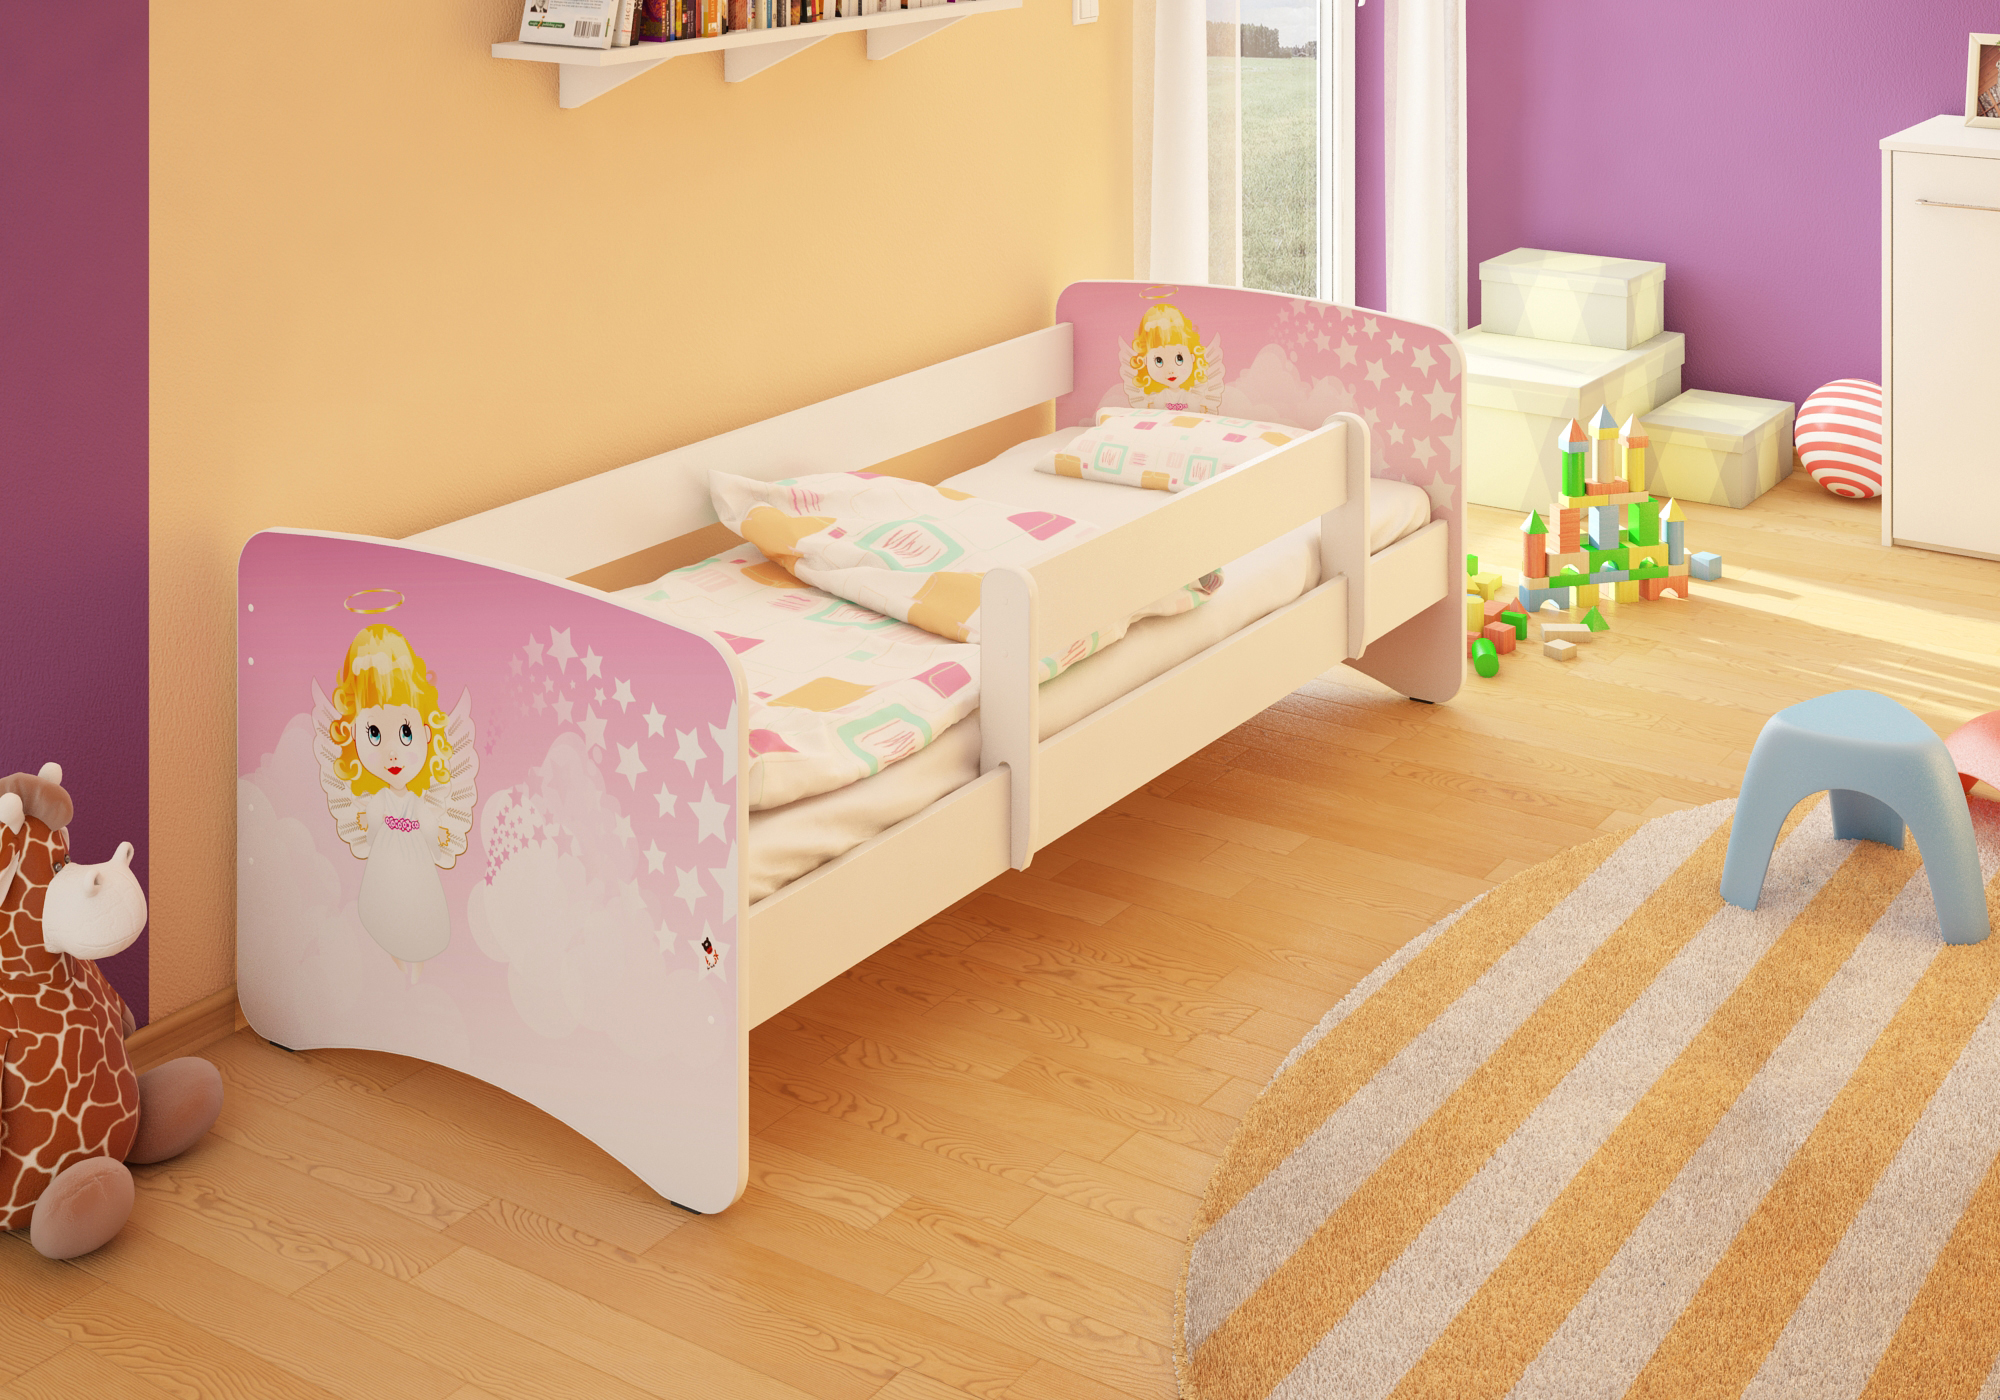 Bfk Best For Kids Brandneu Kinderbett Bett Jugendbett Mit